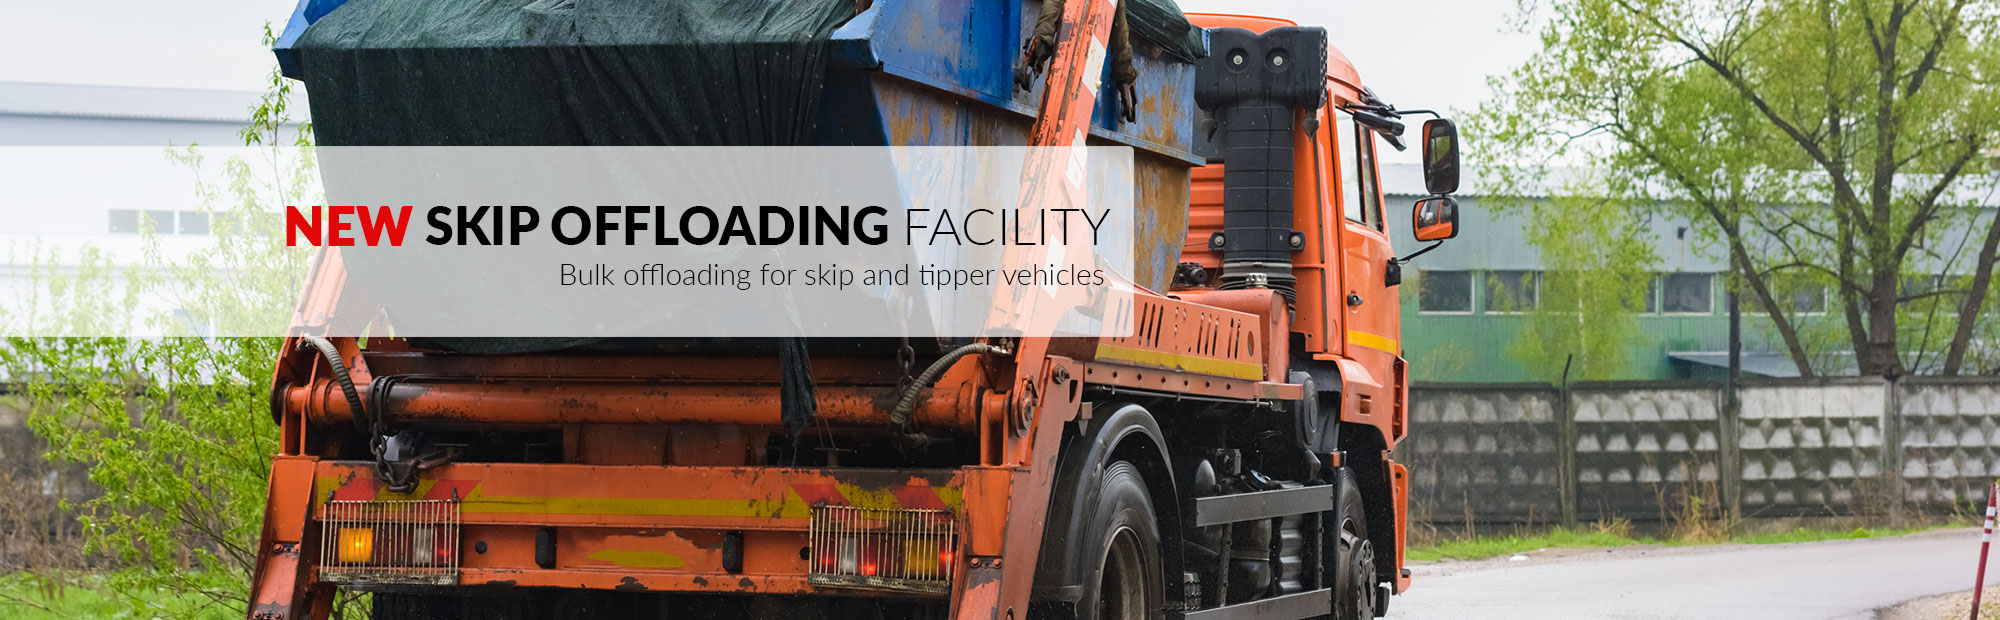 Skip offloading and processing station